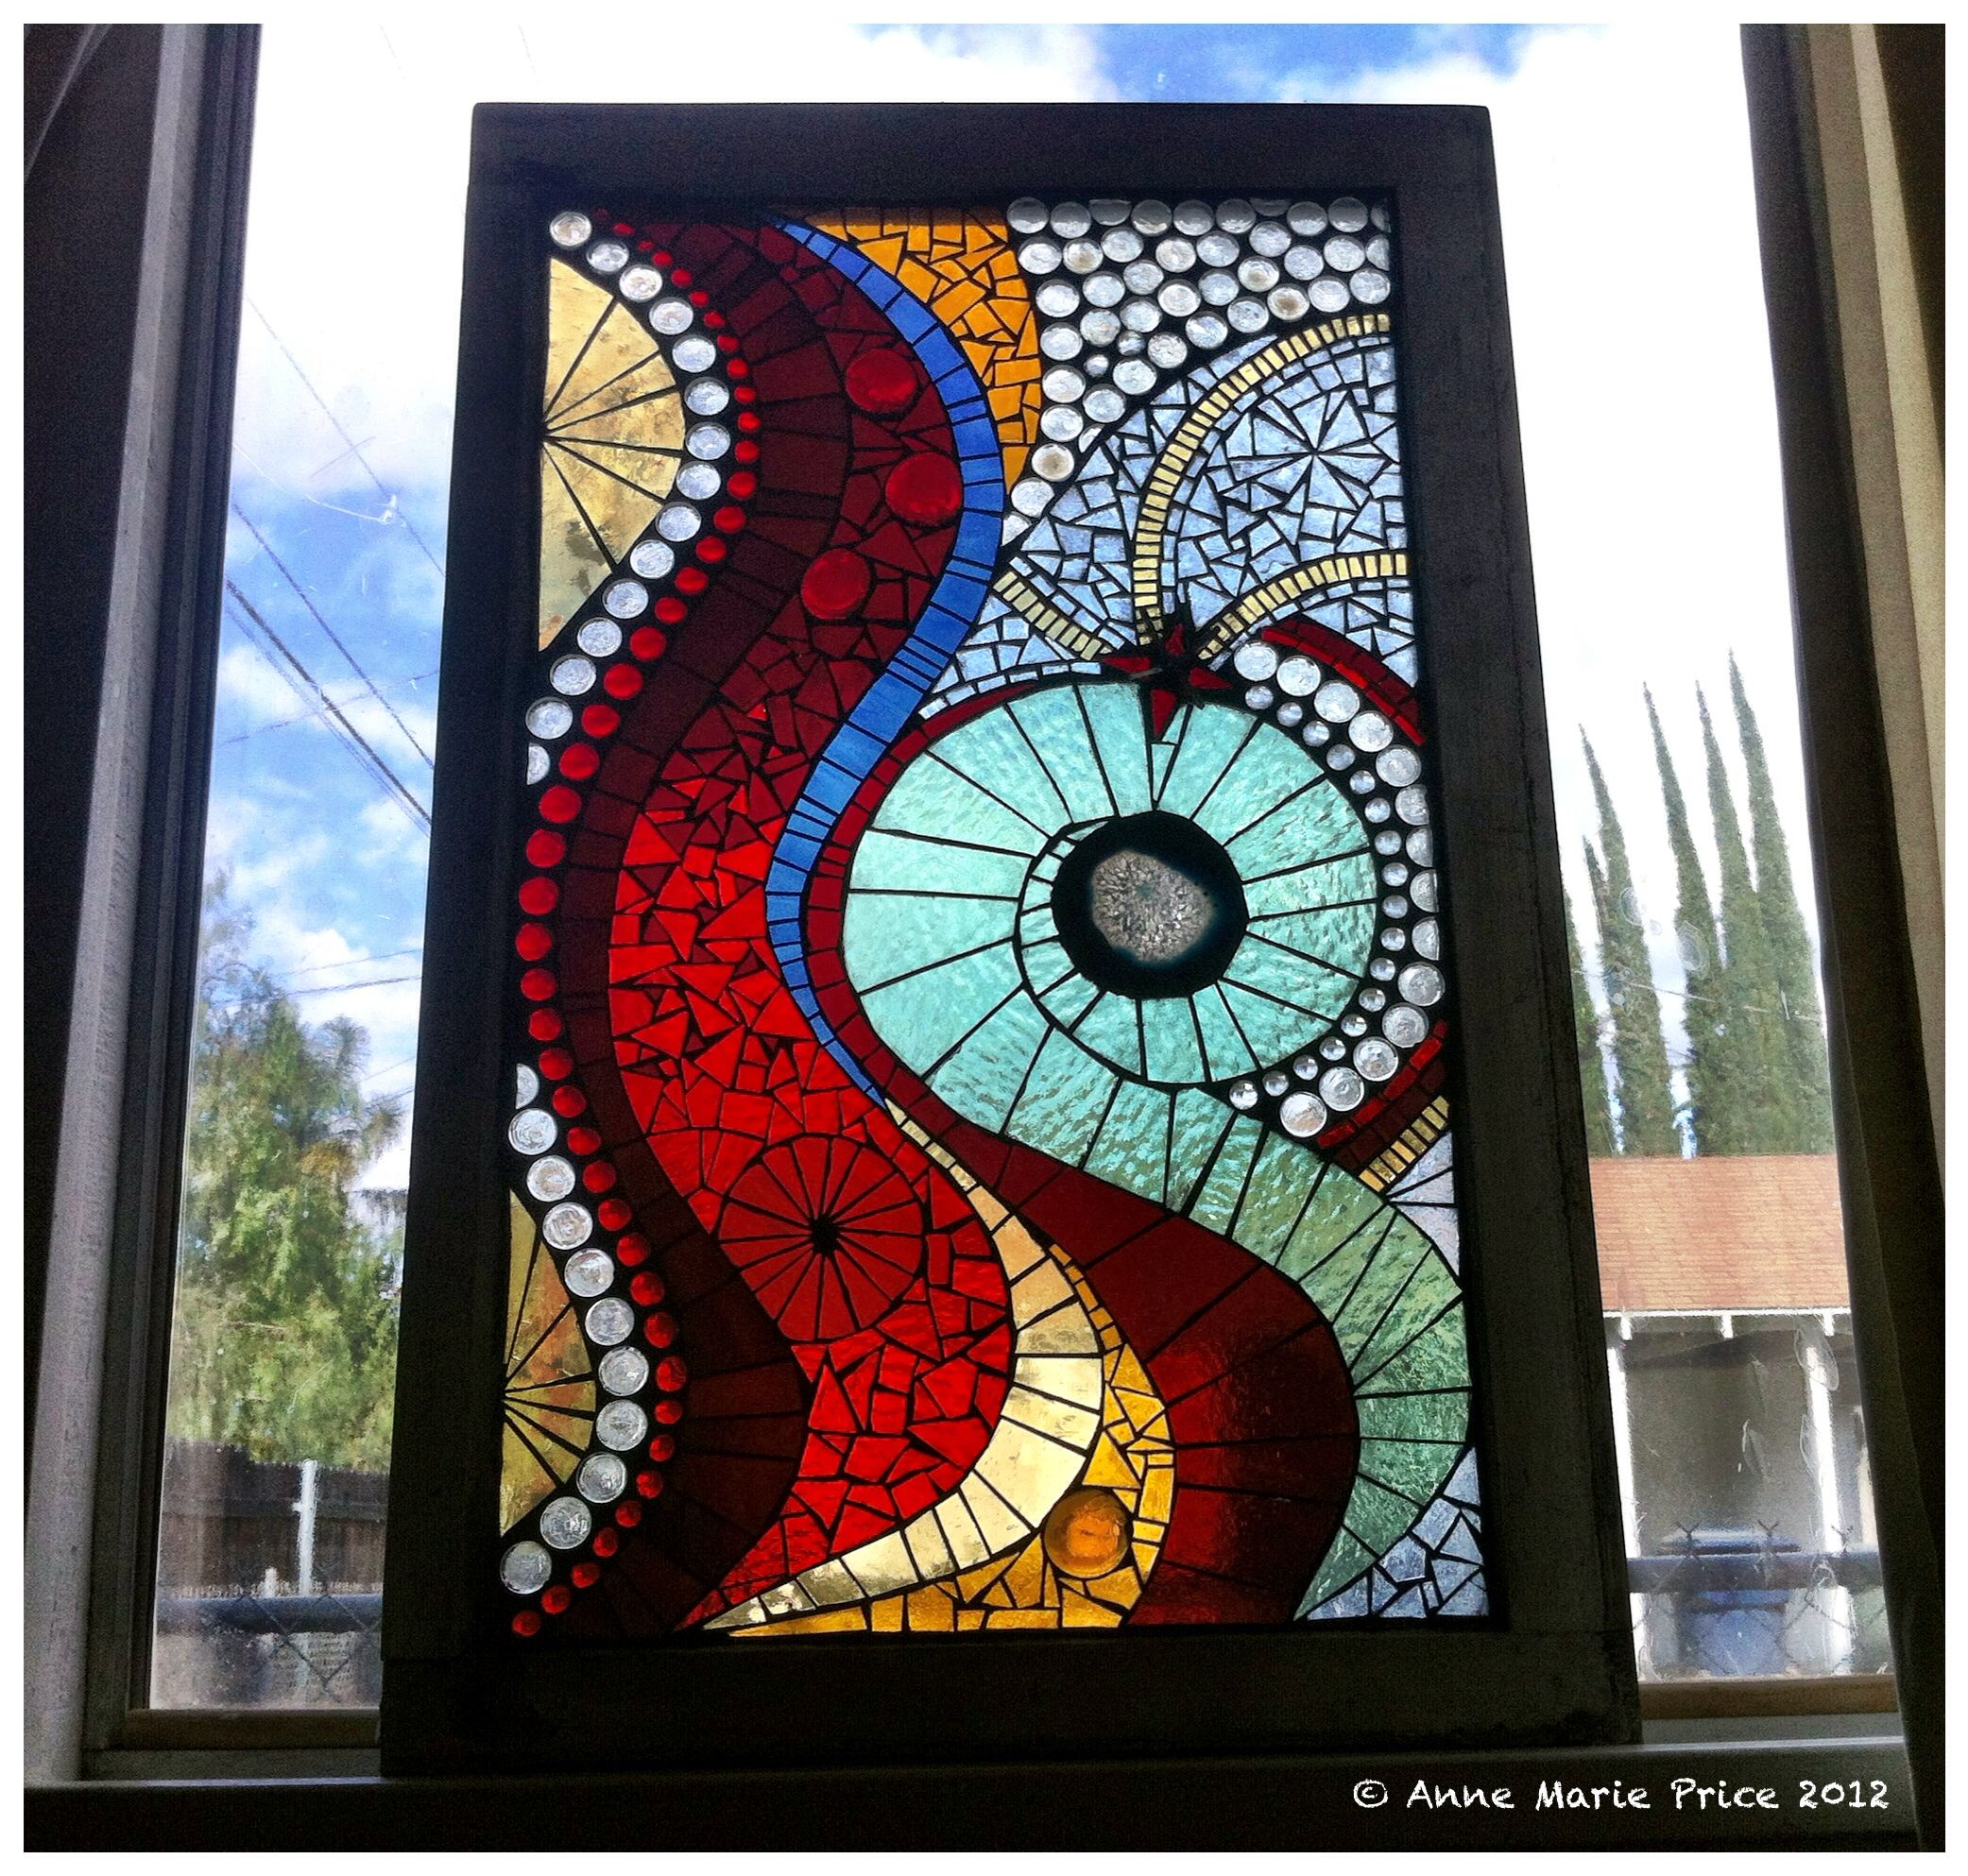 """Beloved Dancing"" by Anne Marie Price  People's Choice Winner of 2014 Delphi Art Glass Festiva #AMP #AnneMariePrice #red #mosaicart #mosaic #art #stainedglass #beautiful #stunning #swirls #agate #window www.ampriceart.com"